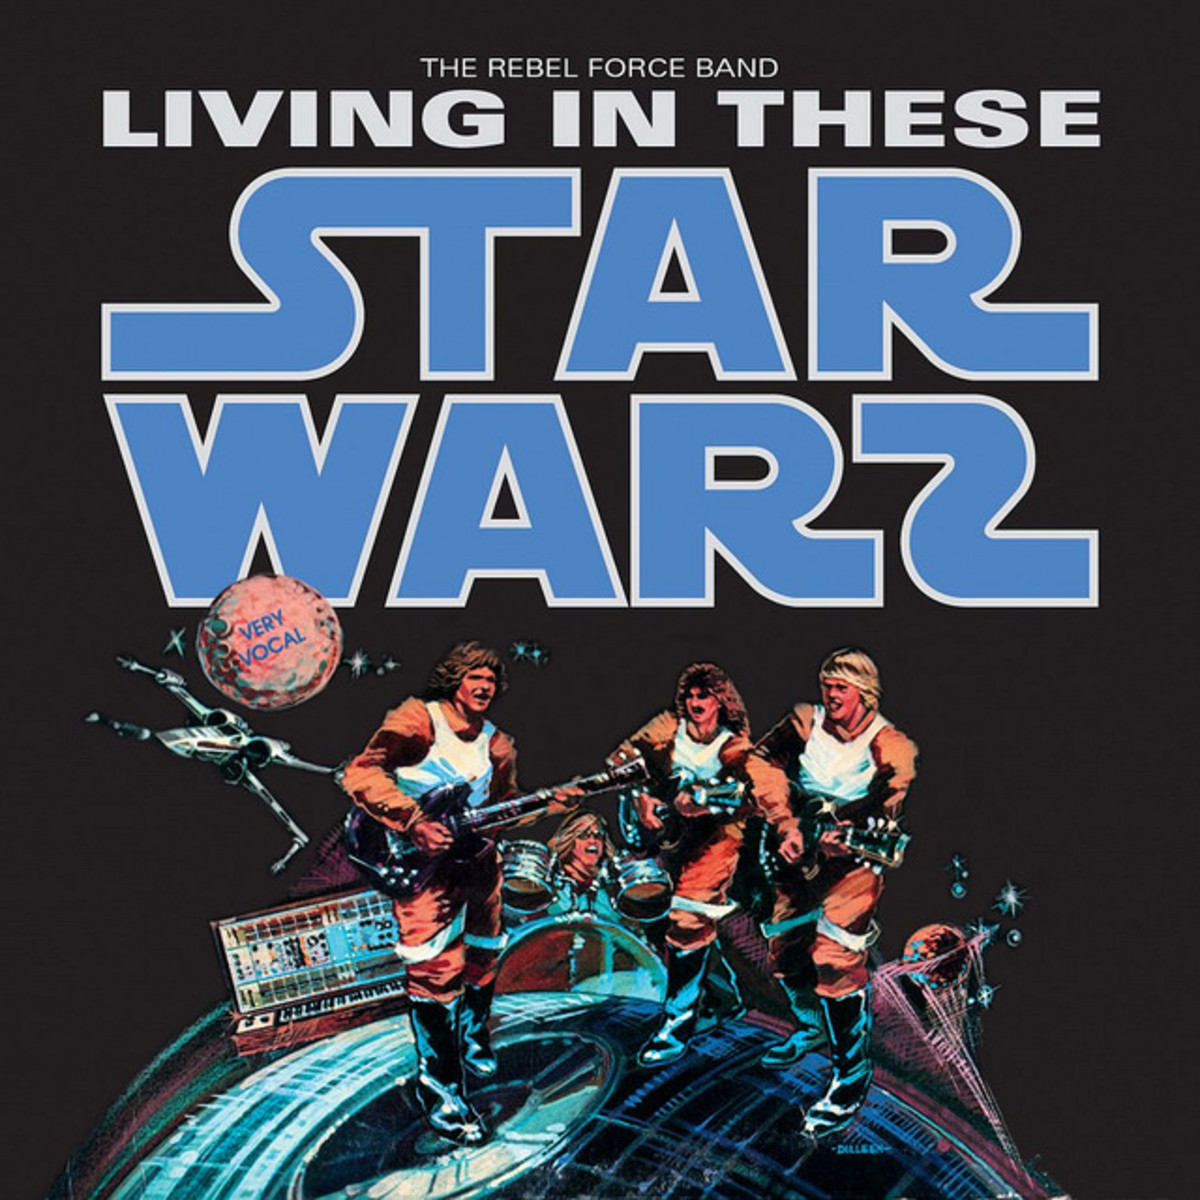 """Rebel Force Band """"Living In These Star Warz""""  Bonwhit Records 12177 12"""" LP Vinyl Record (1977)  US Pressing"""